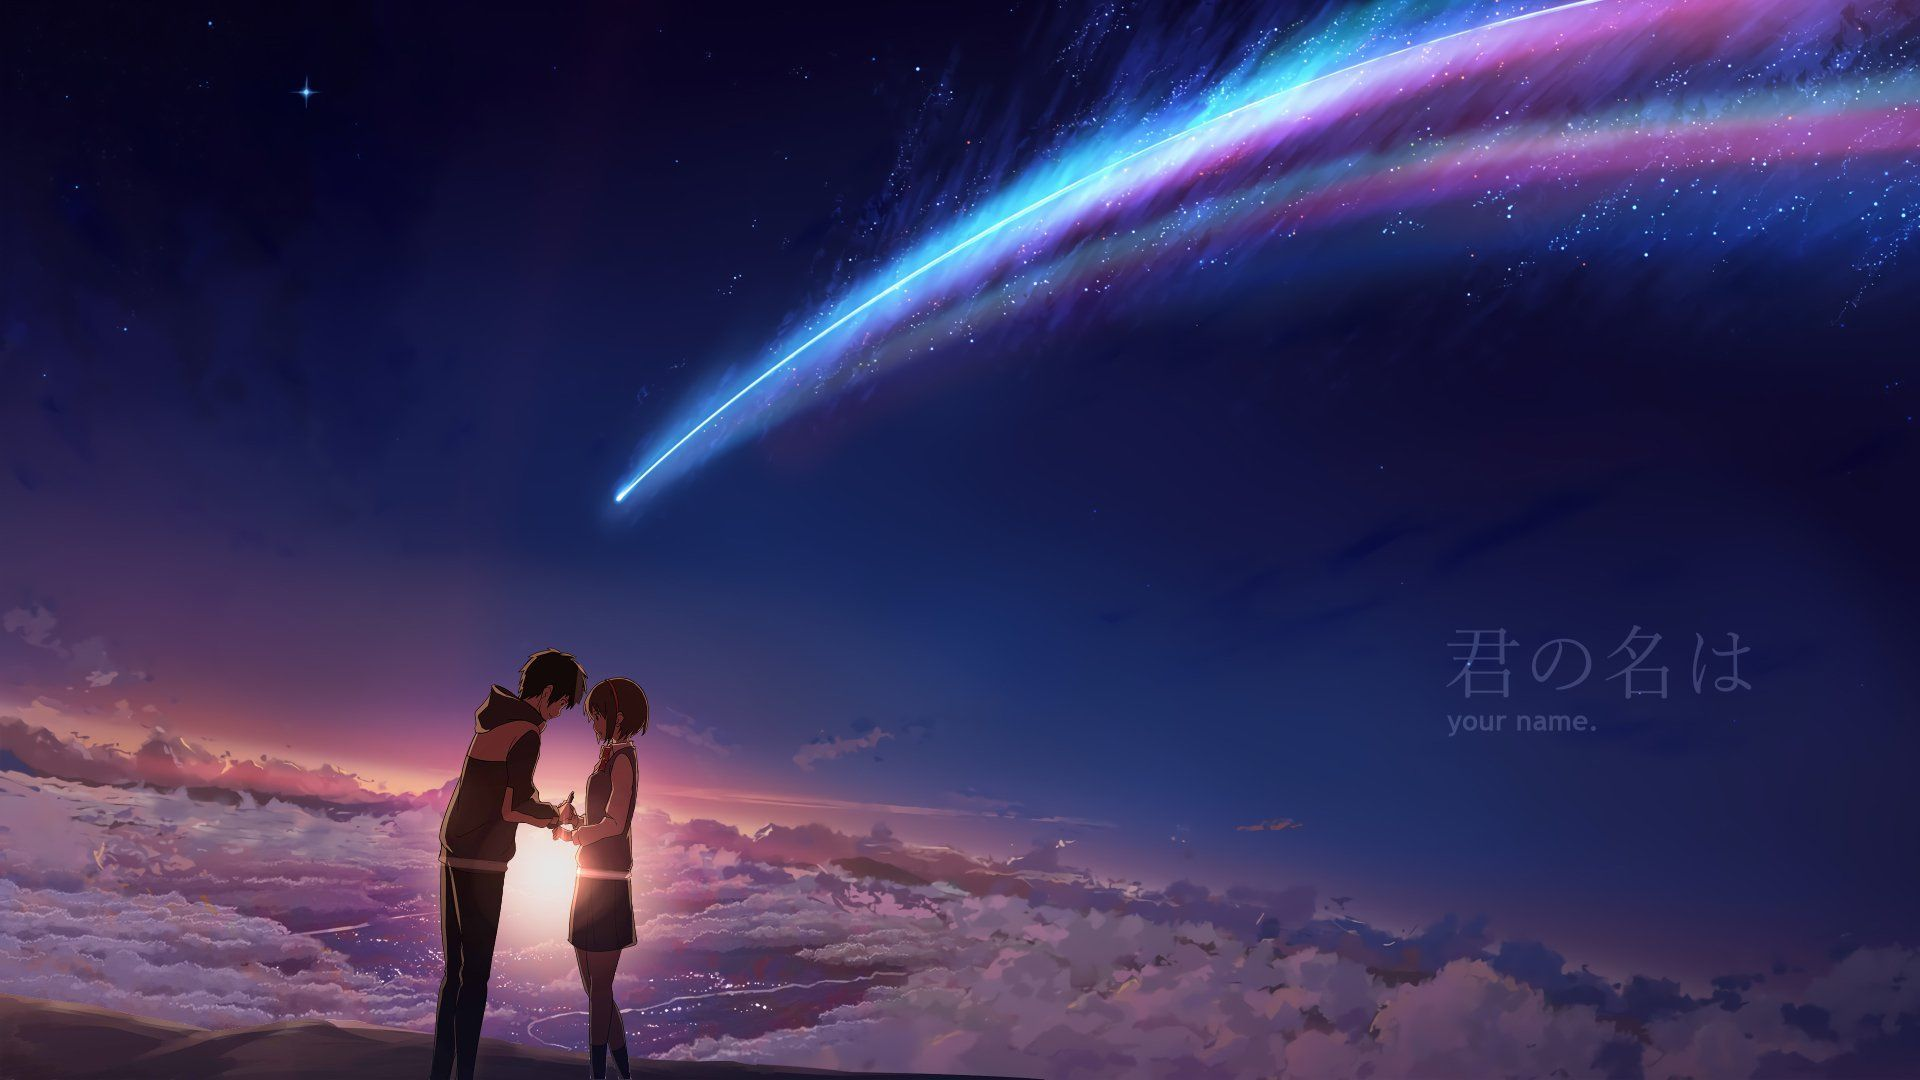 Windows 10 Wallpaper Anime Mywallpapers Site In 2020 Kimi No Na Wa Wallpaper Anime Wallpaper Download 4k Wallpapers For Pc